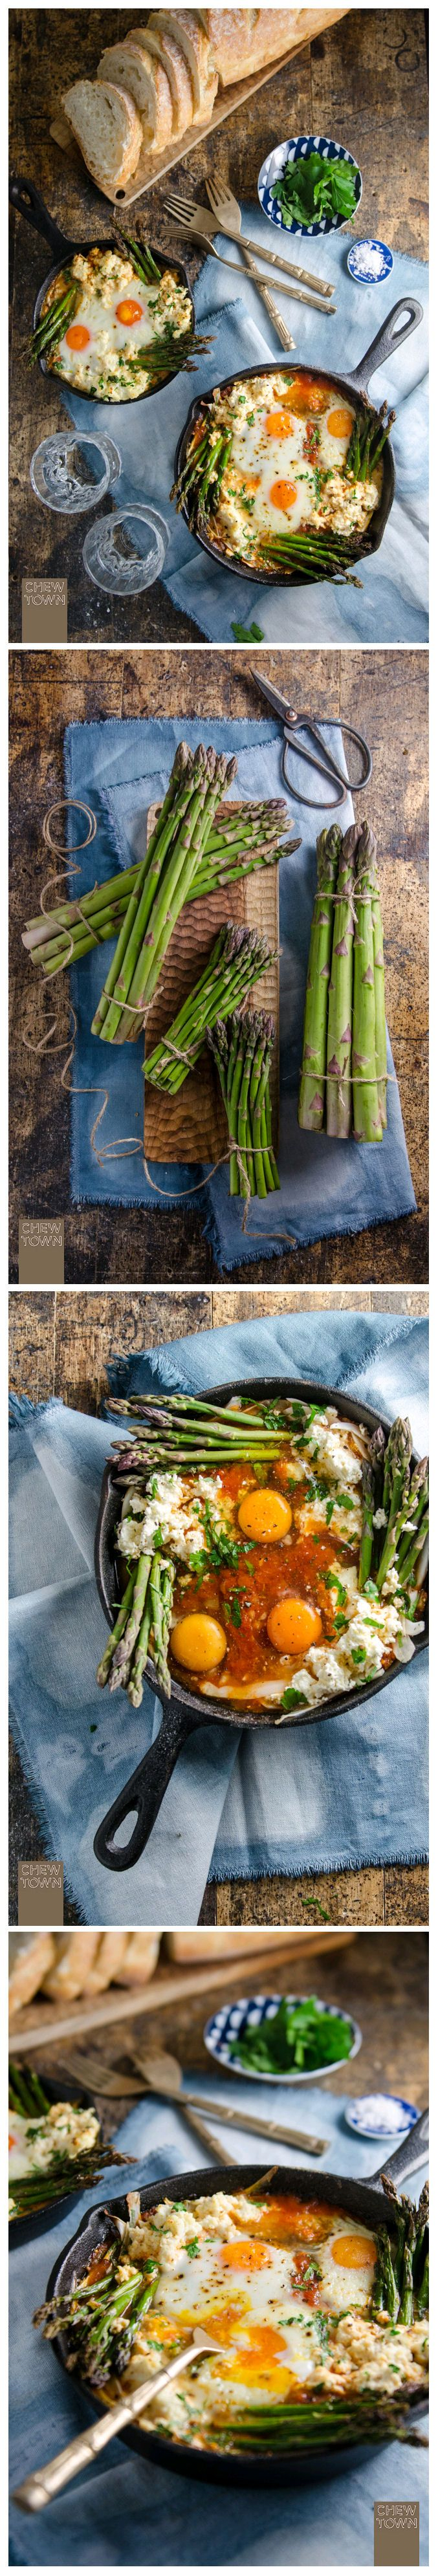 BAKED EGGS IN ITALIAN TOMATO SUGO WITH ASPARAGUS, FENNEL AND RICOTTA